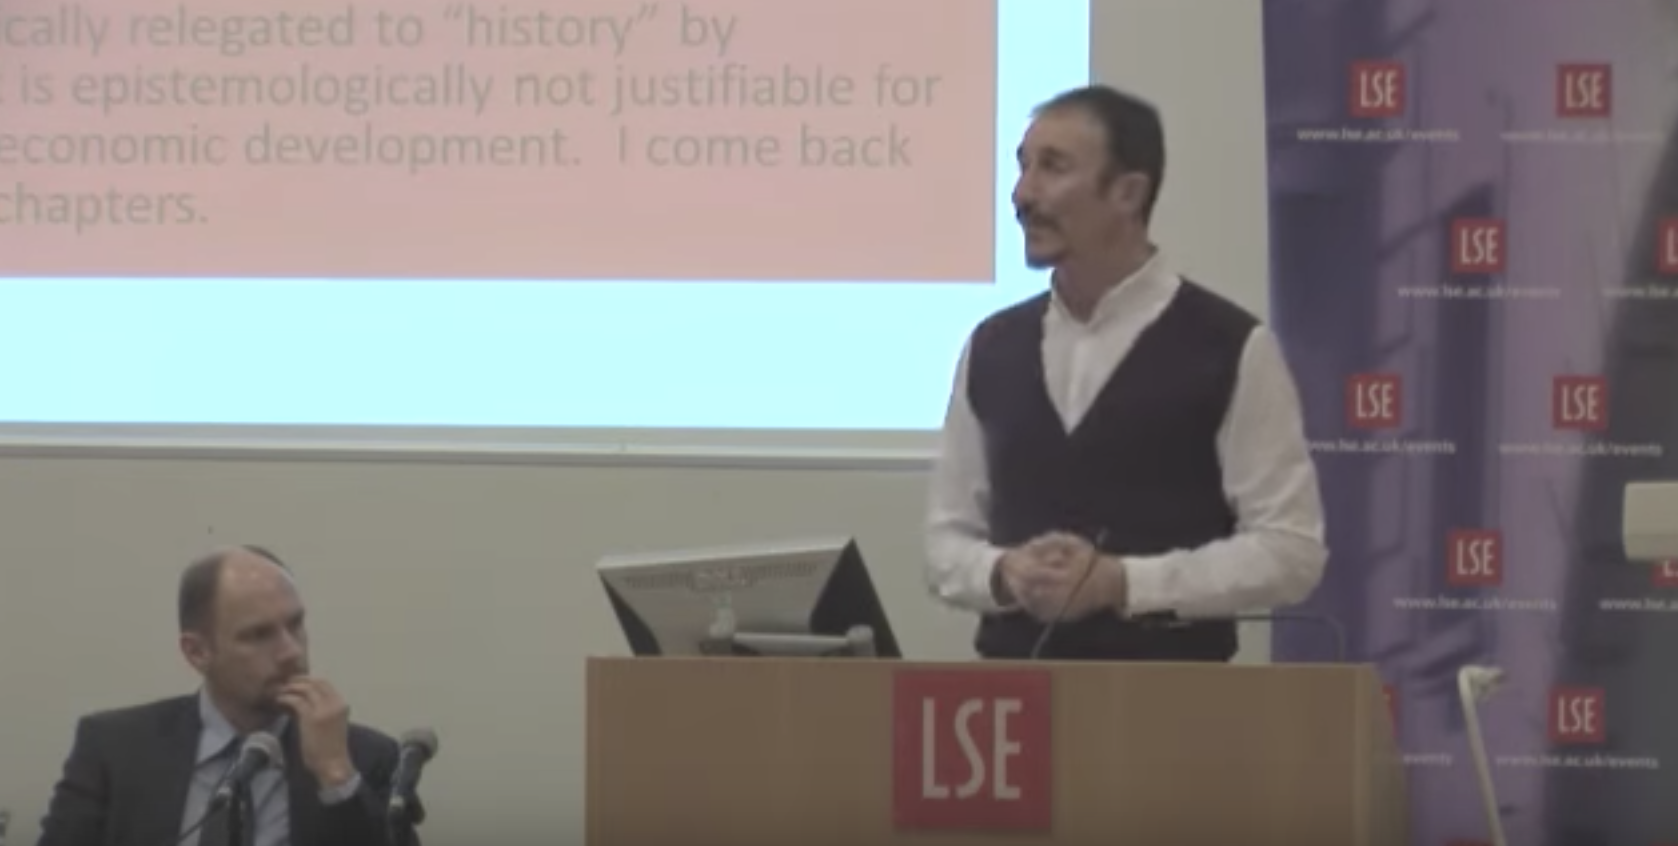 In-depth:Keys to the City: how economics, institutions, social interaction and politics shape development, Professor Michael Storper (Youtube)